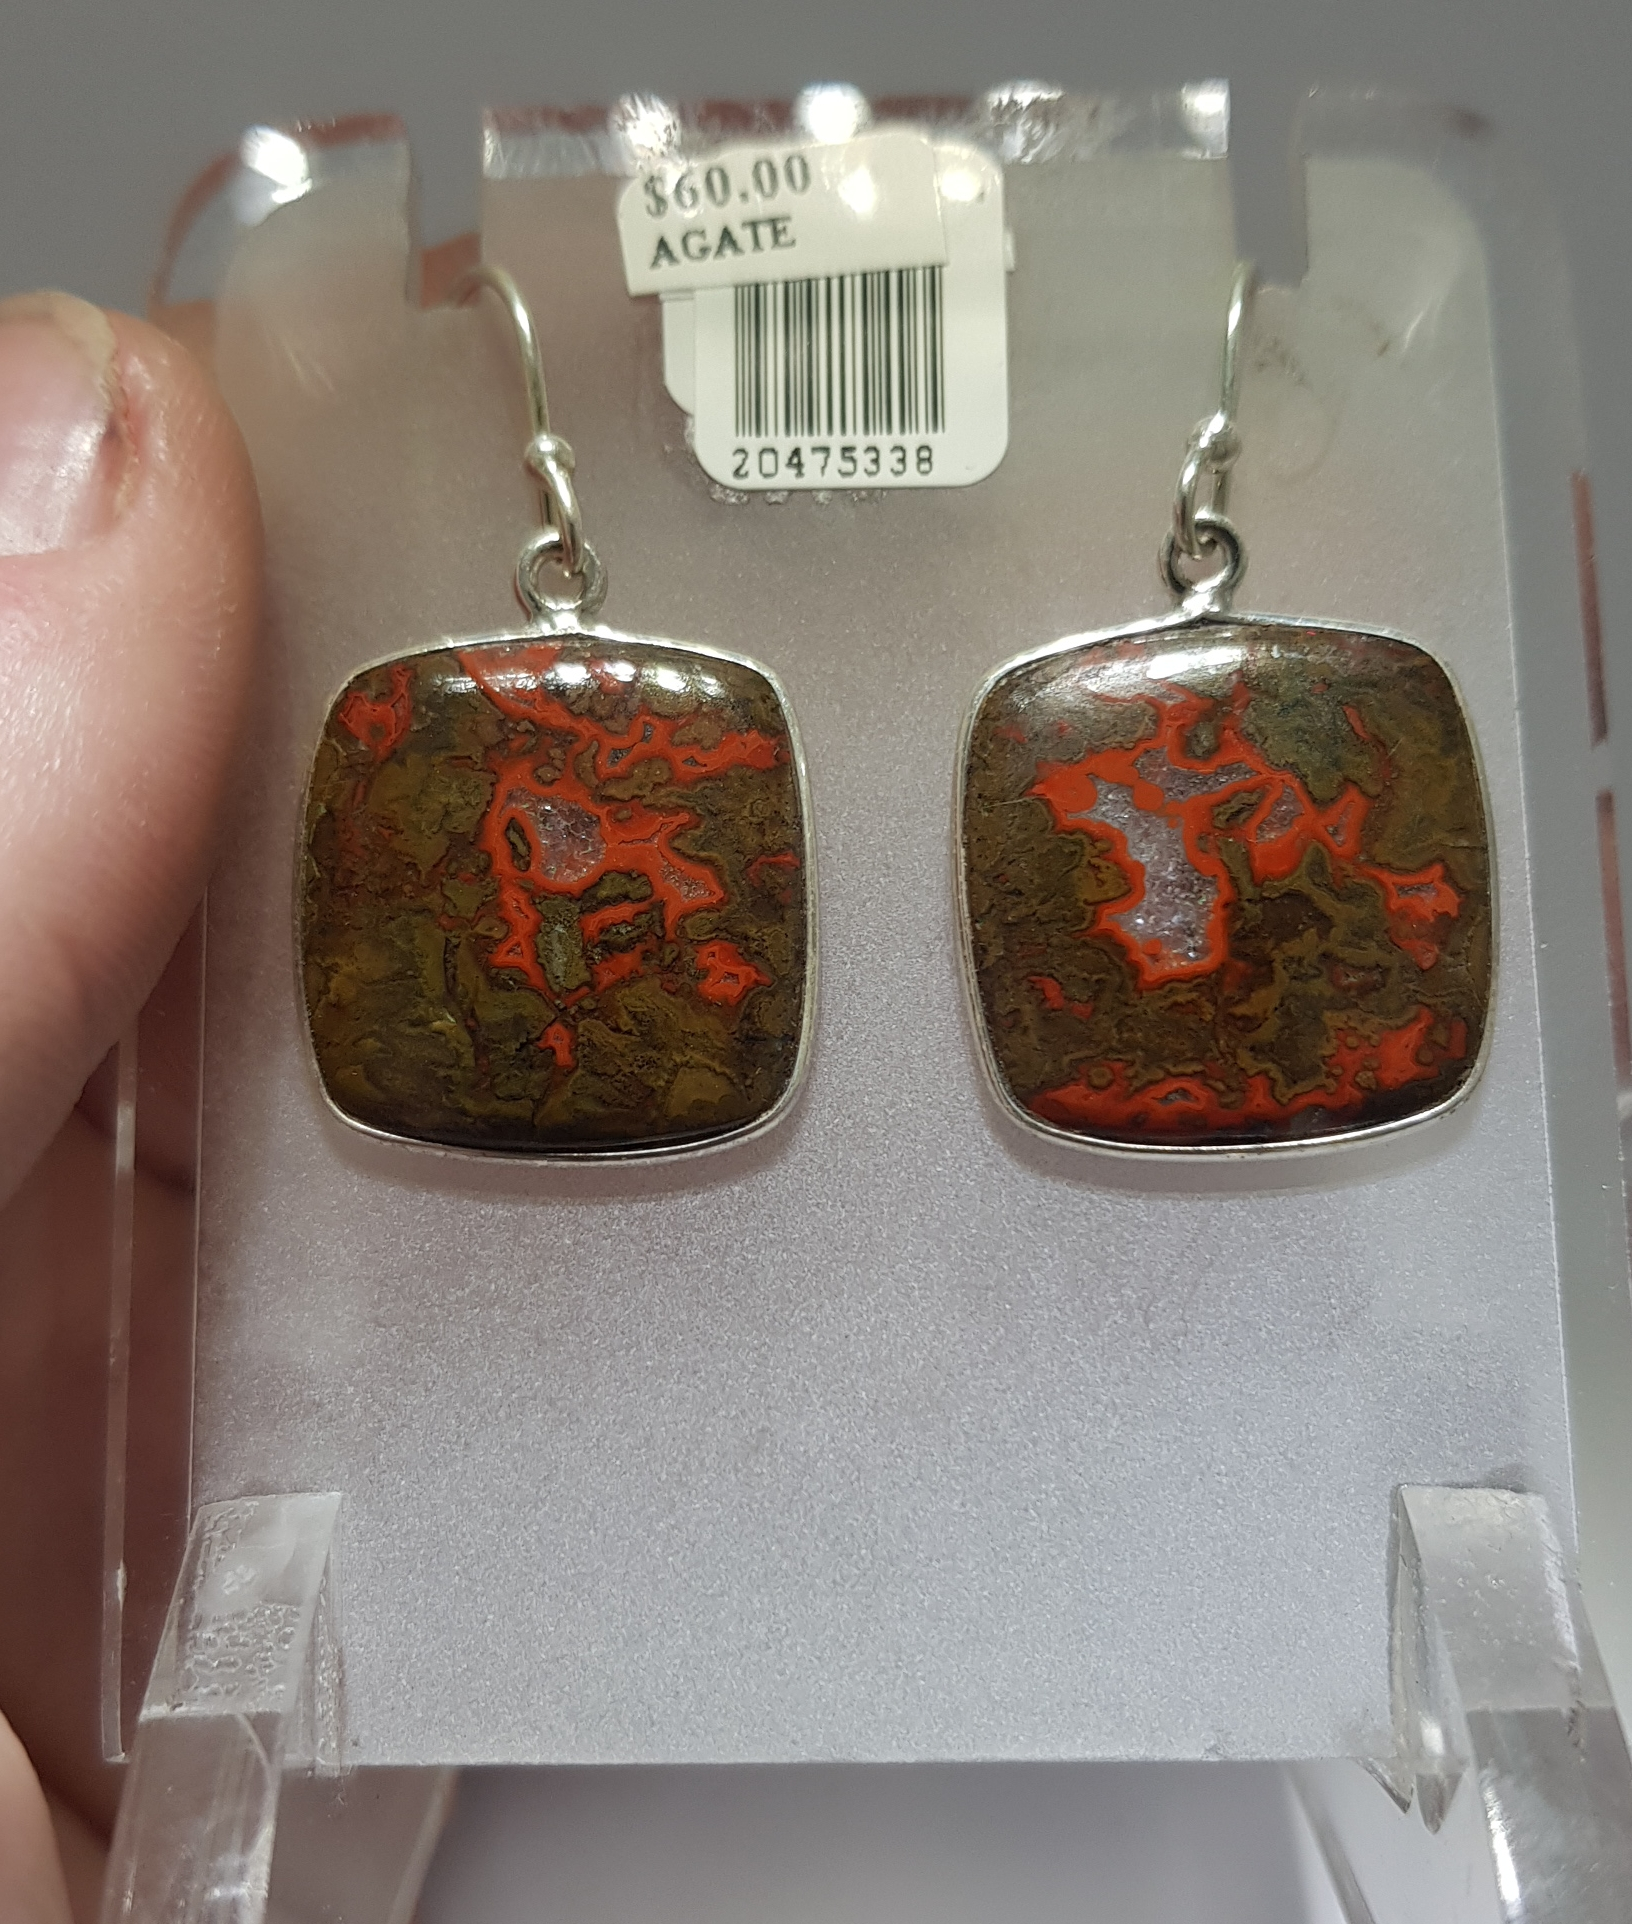 Agate in Rhyolite earrings